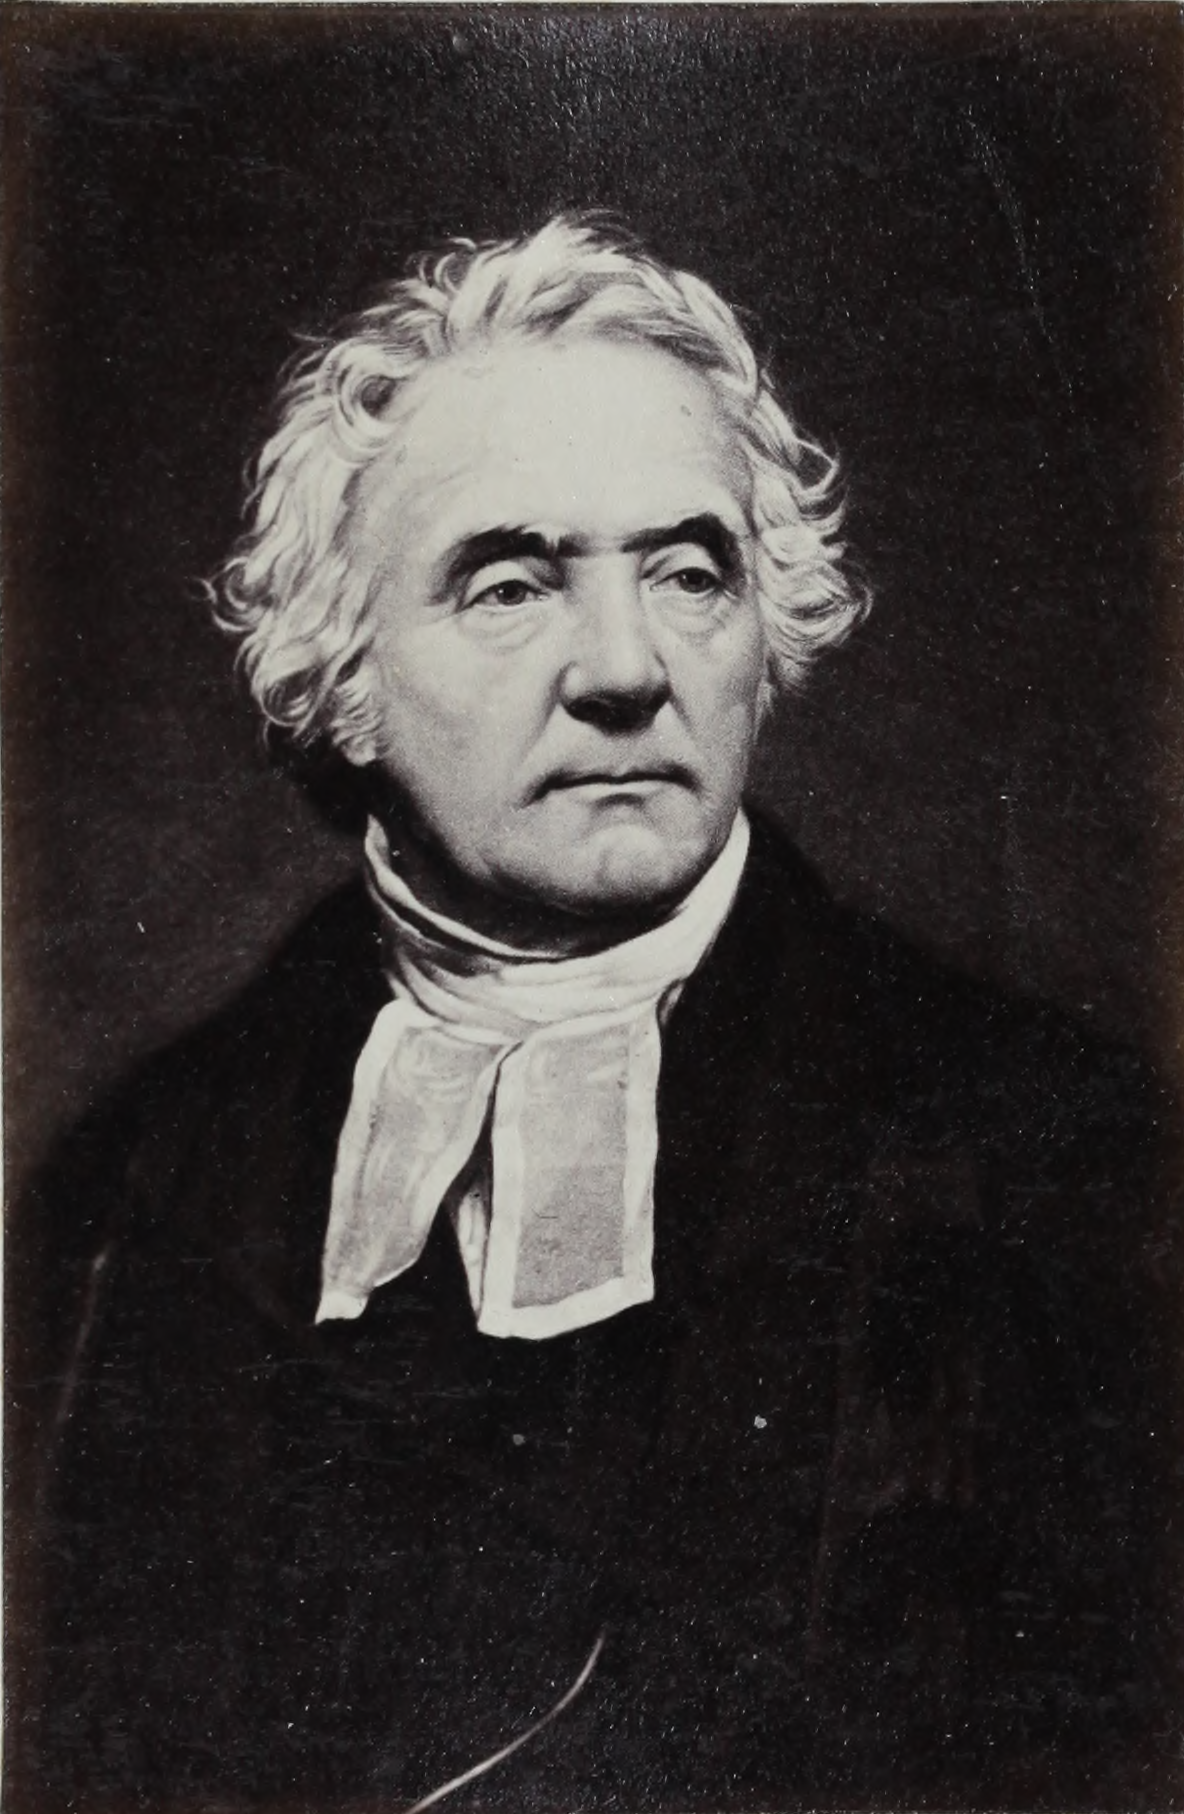 Thomas Chalmers by [[John Faed]], 1847<ref>{{cite book|last1=Annan|first1=Thomas|title=Illustrated catalogue of the exhibition of portraits on loan in the new galleries of art, Corporation buildings, Sauchiehall Street|date=1868|publisher=Glasgow Art Gallery and Museum|location=Glasgow|pages=24–25|url=https://archive.org/stream/illustratedcatal00anna#page/24/mode/2up/search/chalmers|accessdate=4 December 2017}}</ref>